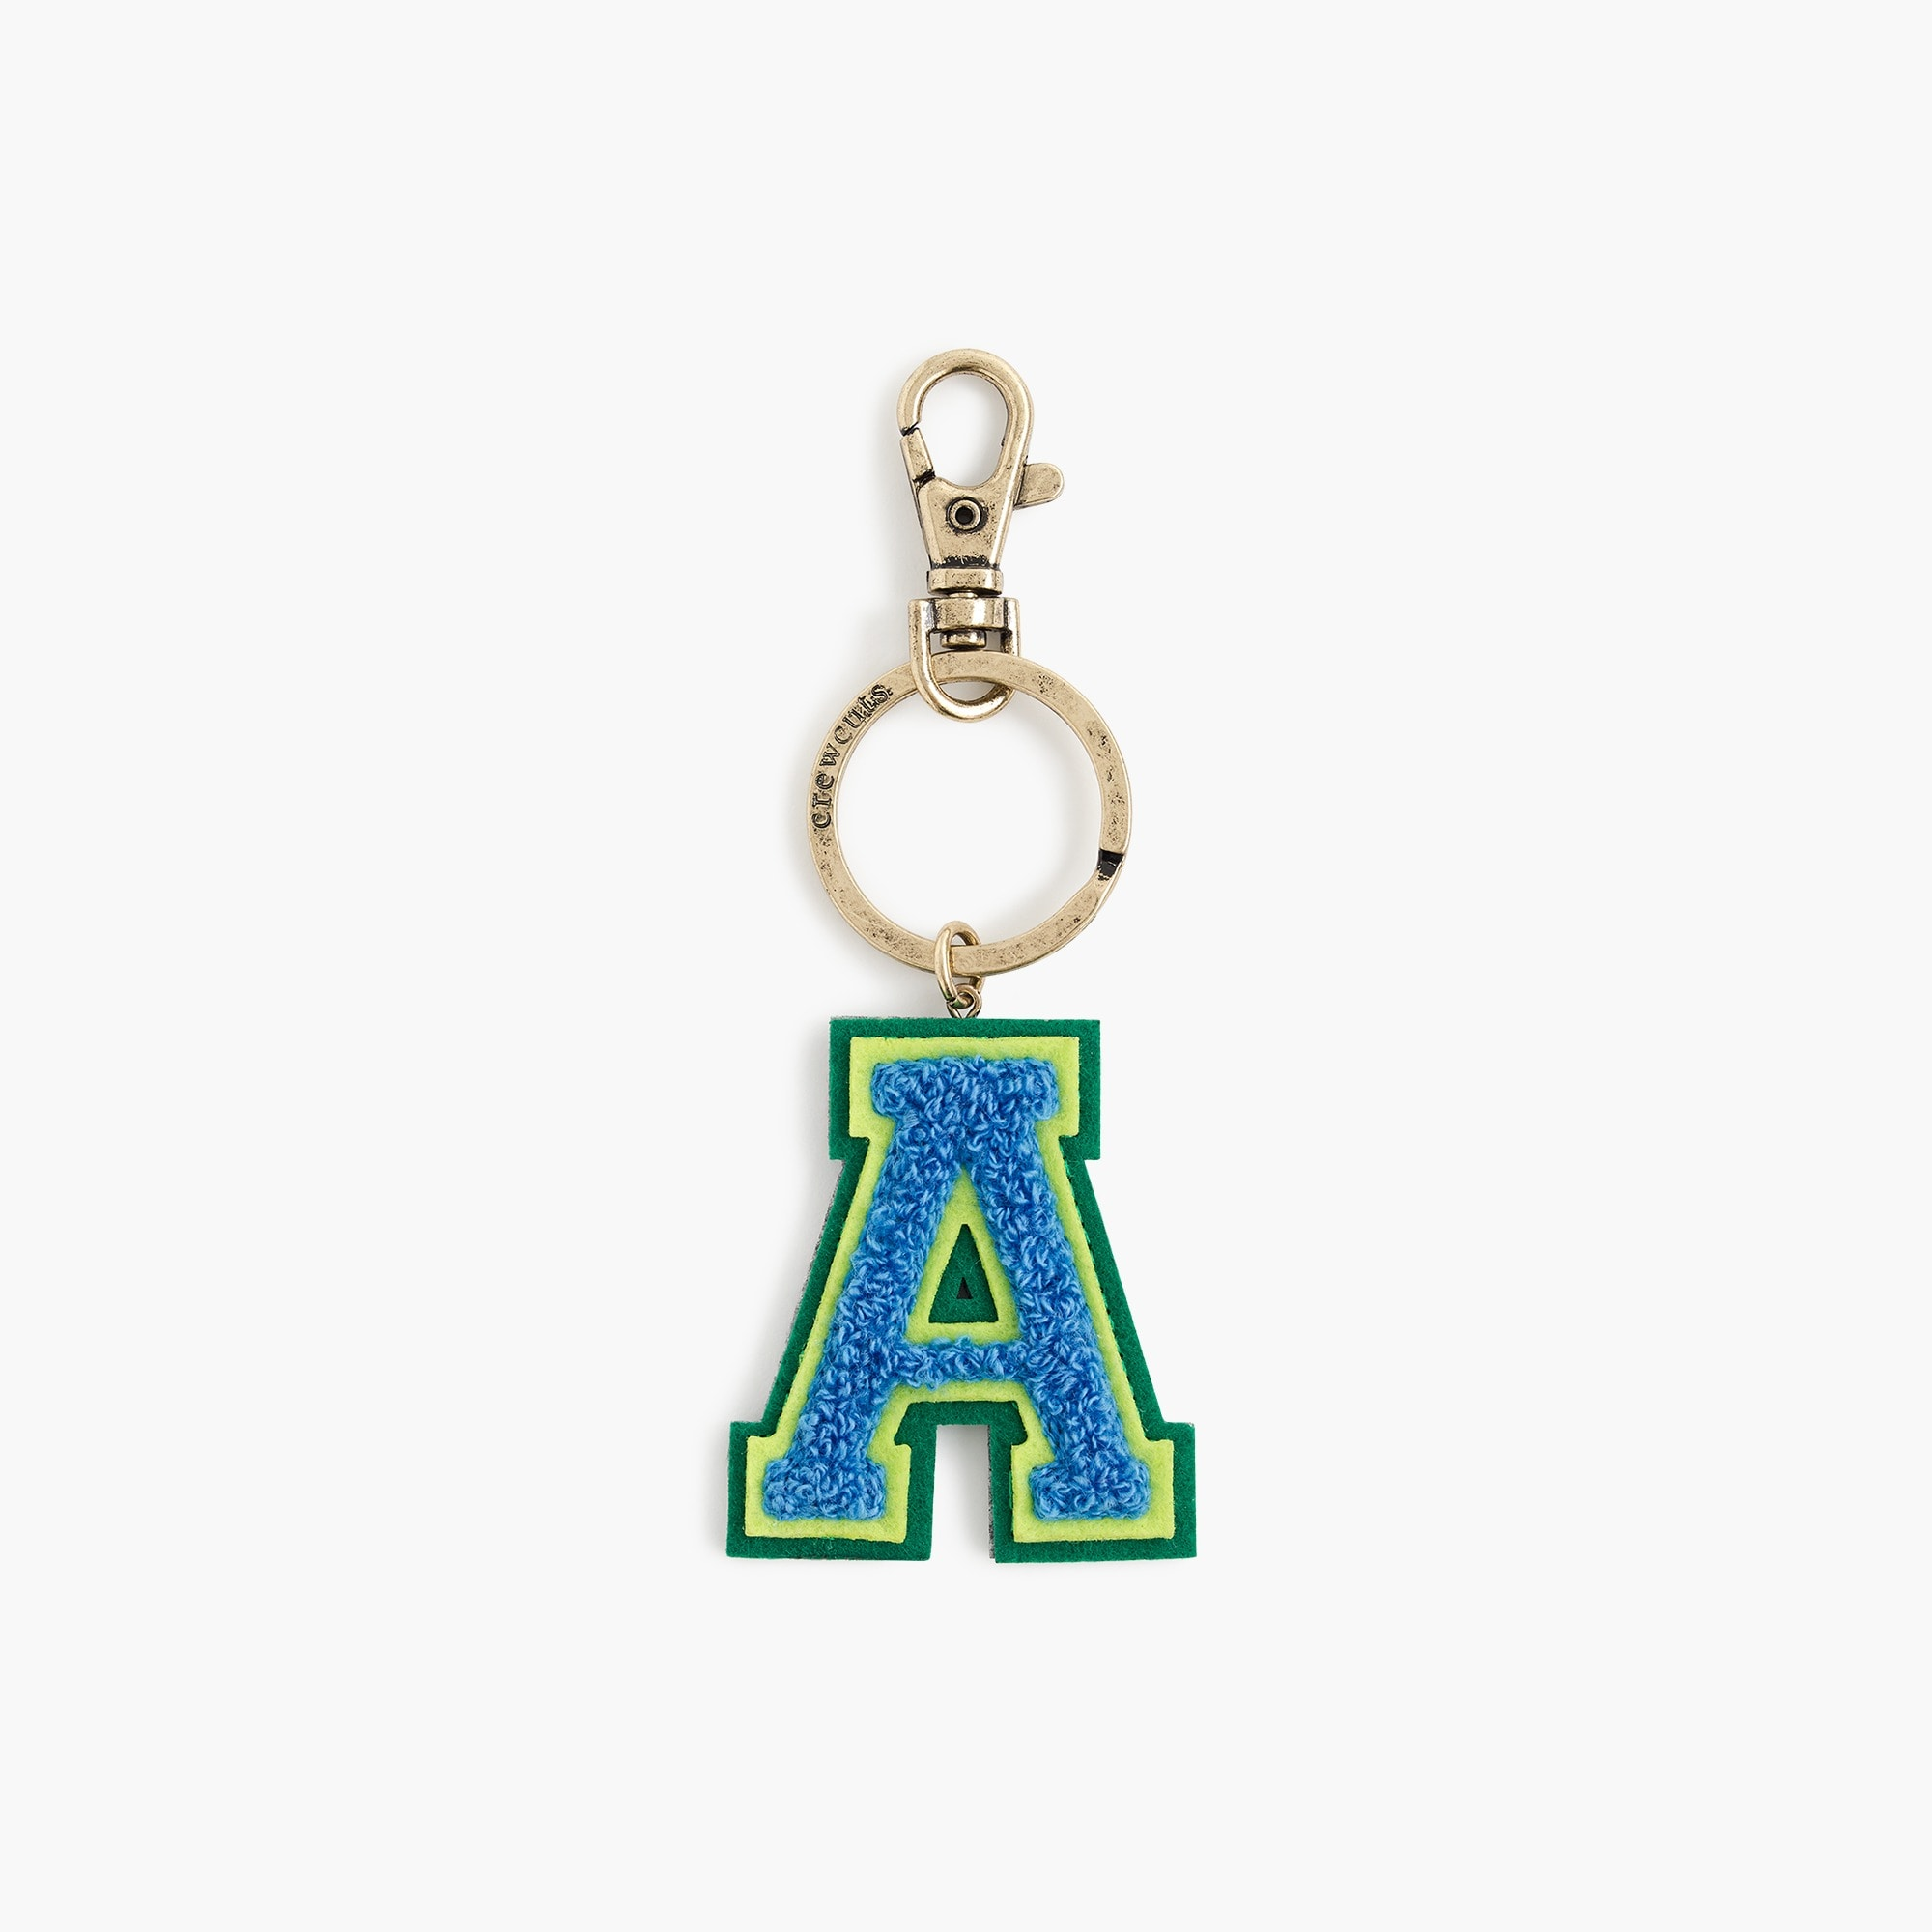 Kids' letter key chain boy accessories c